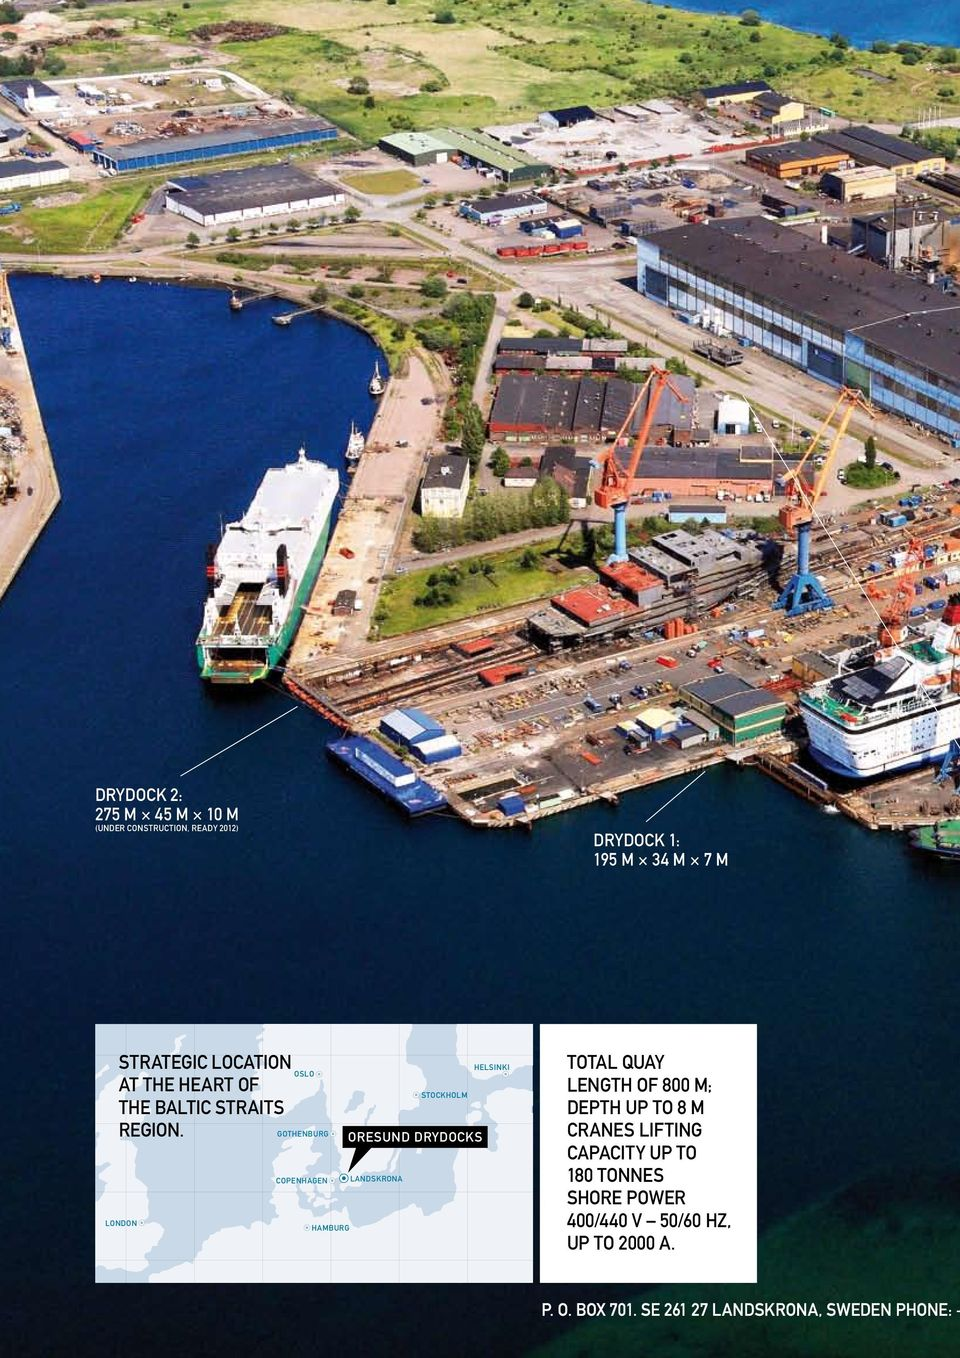 LONDON OSLO GOTHENBURG COPENHAGEN HAMBURG STOCKHOLM ORESUND DRYDOCKS LANDSKRONA HELSINKI TOTAL QUAY LENGTH OF